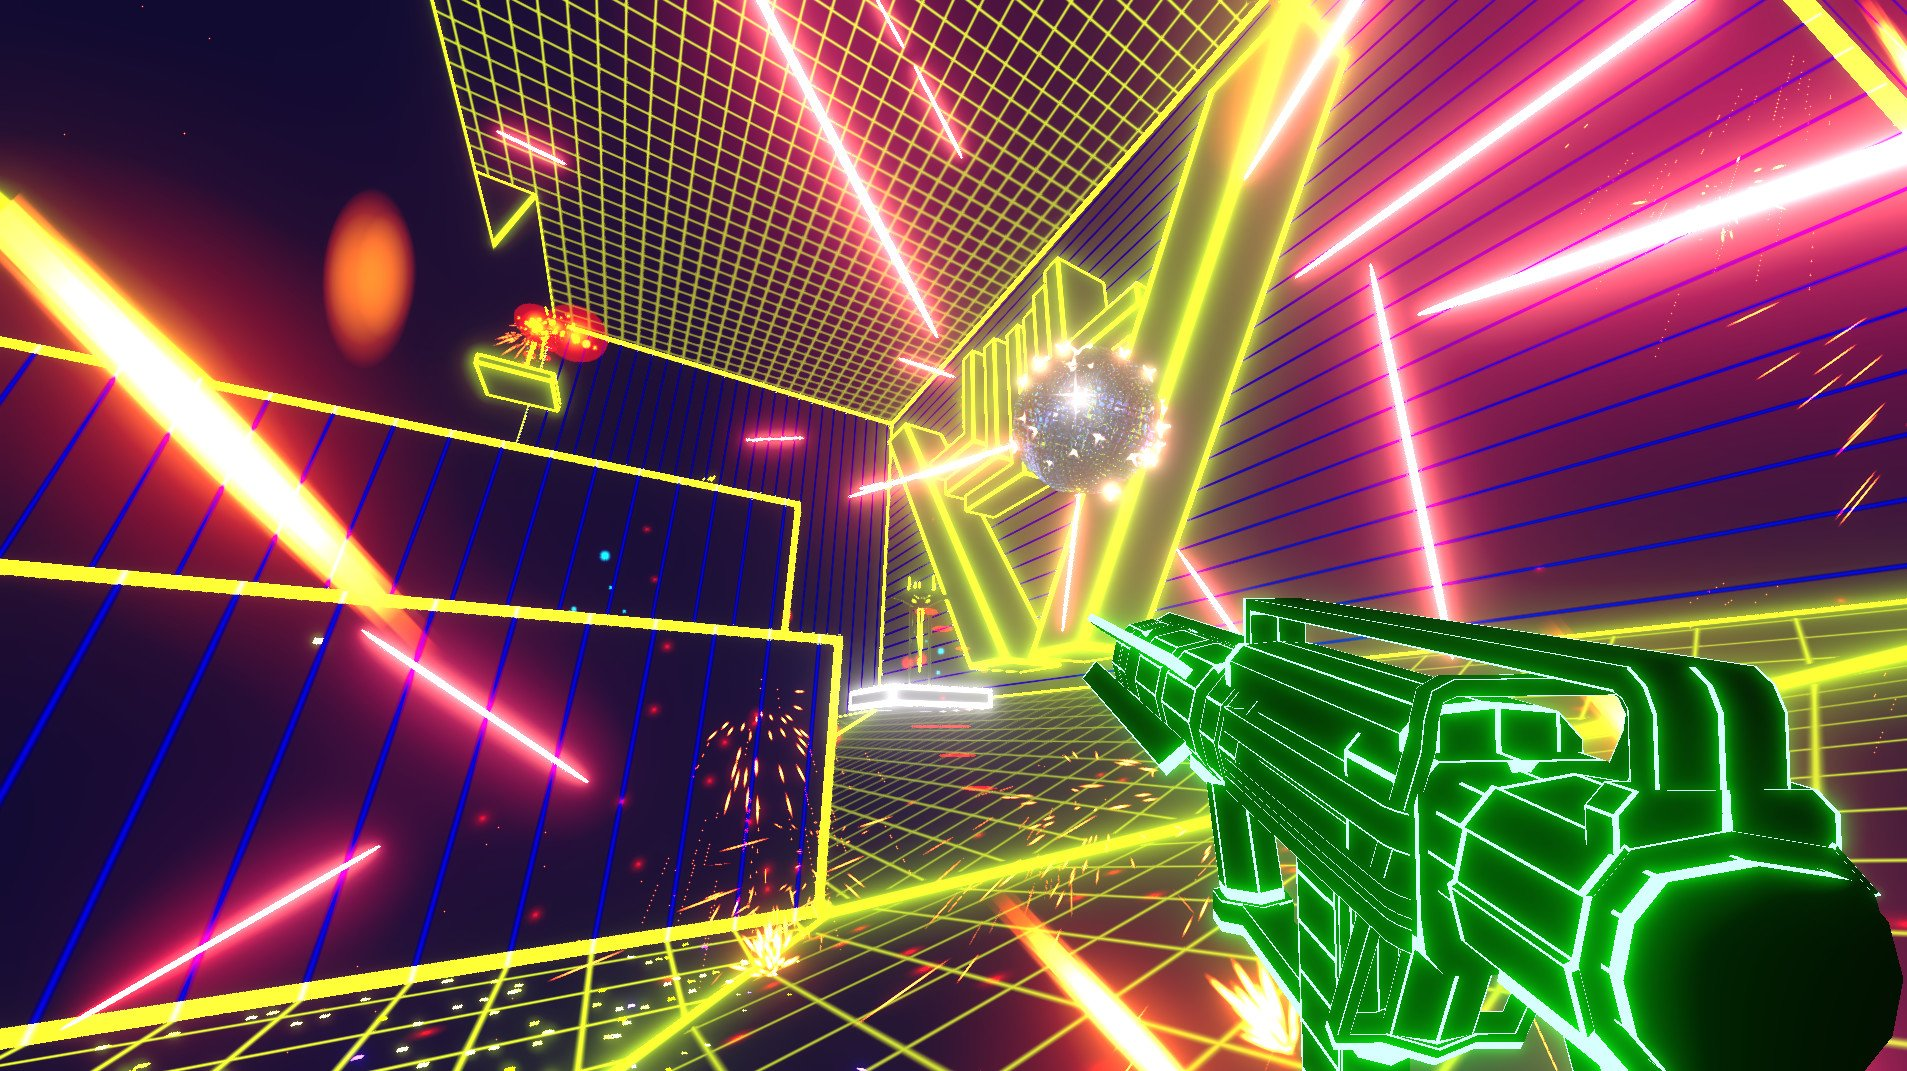 Black Ice could pass off as a Tron sequel screenshot